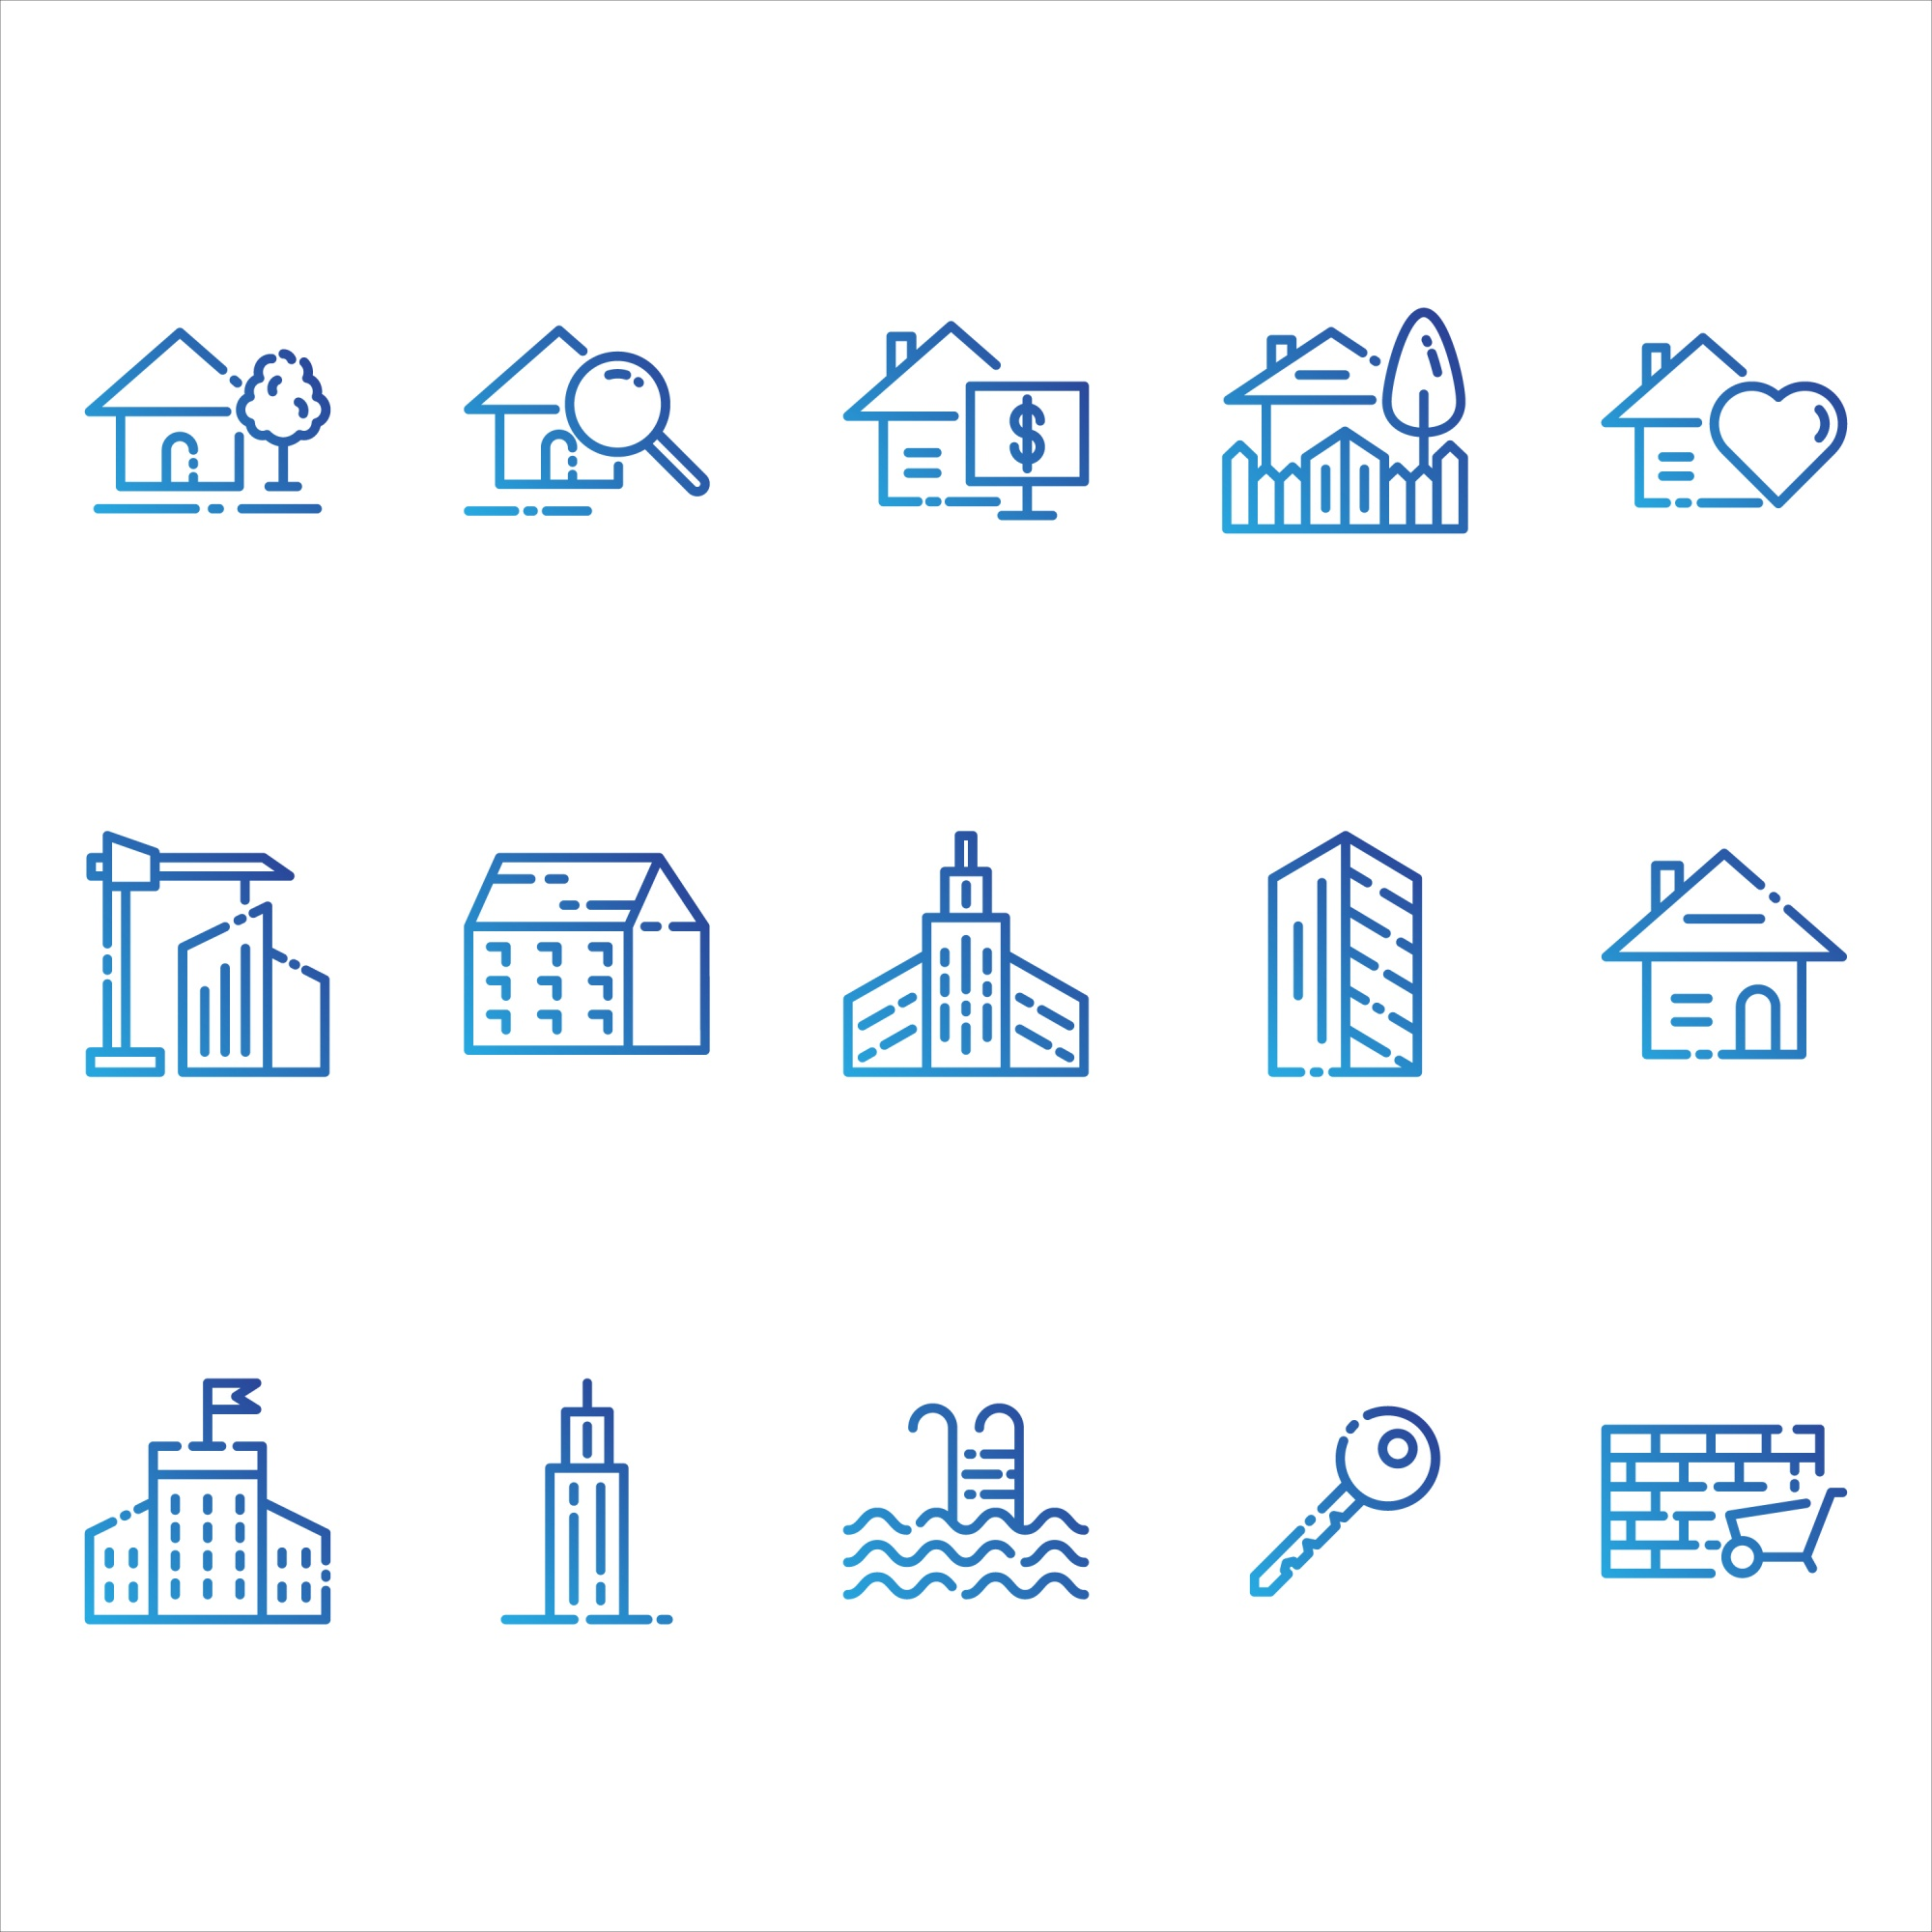 Real estate and buildings icons